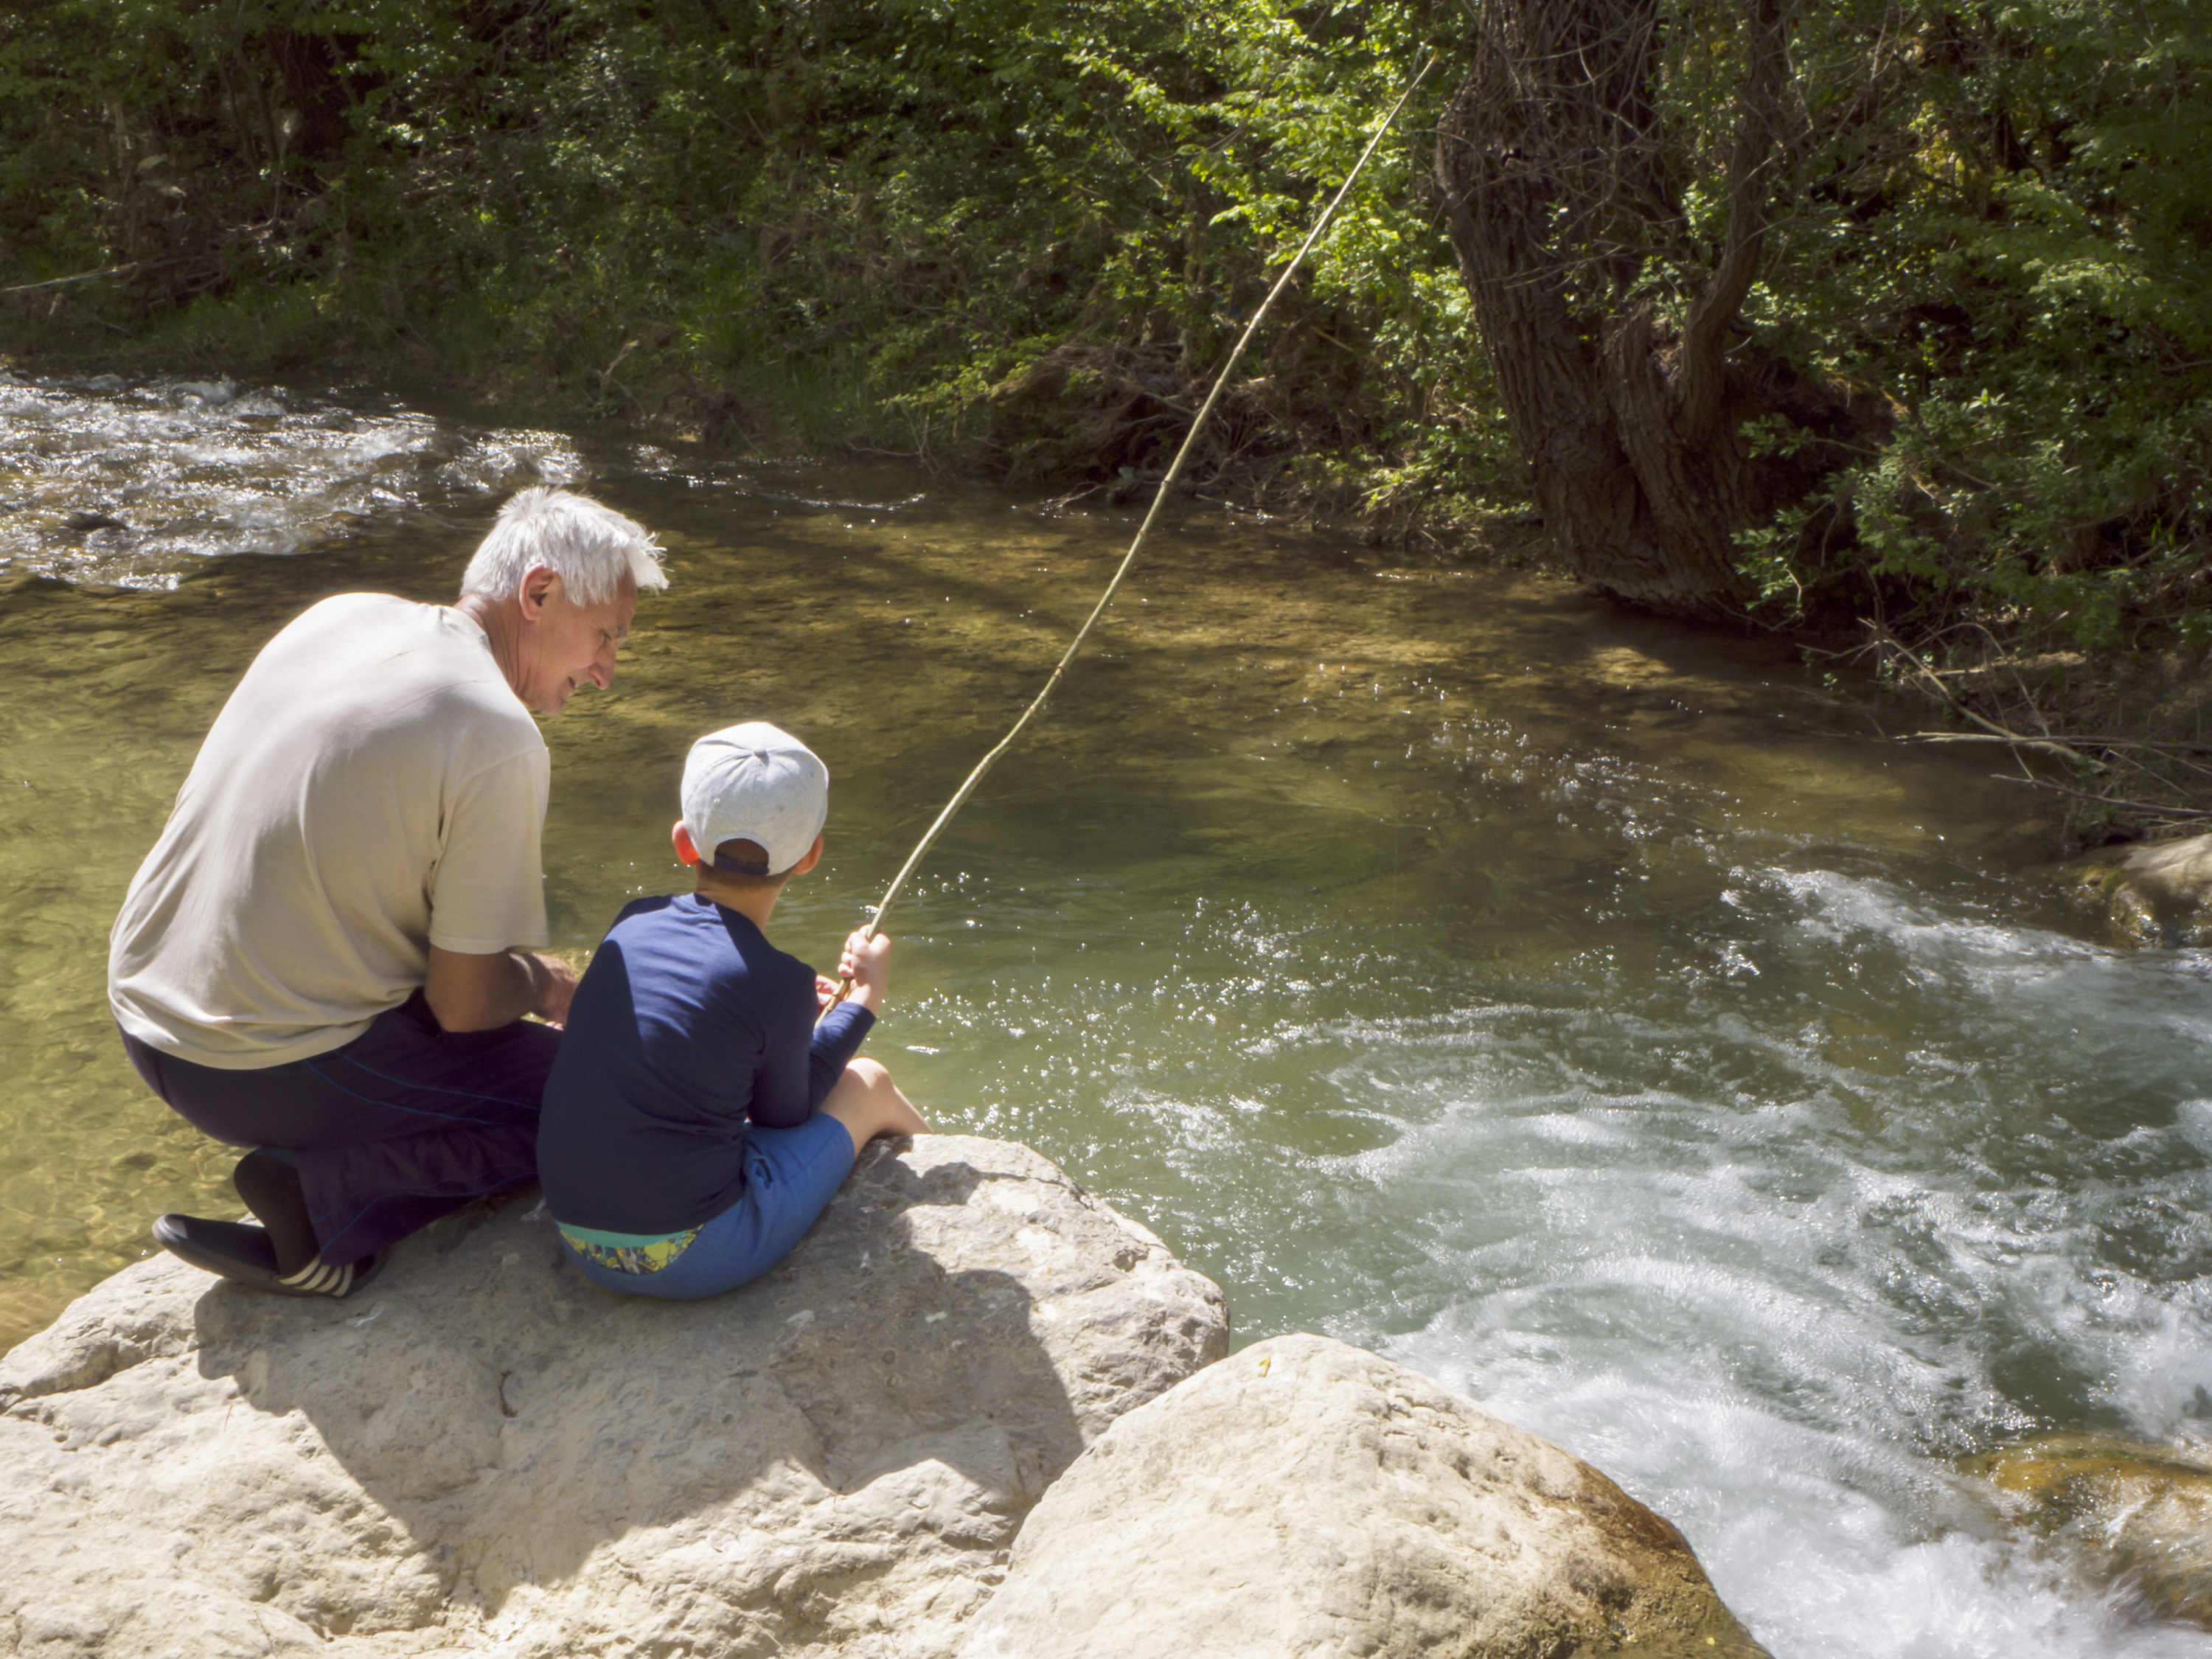 An old man and young boy fishing